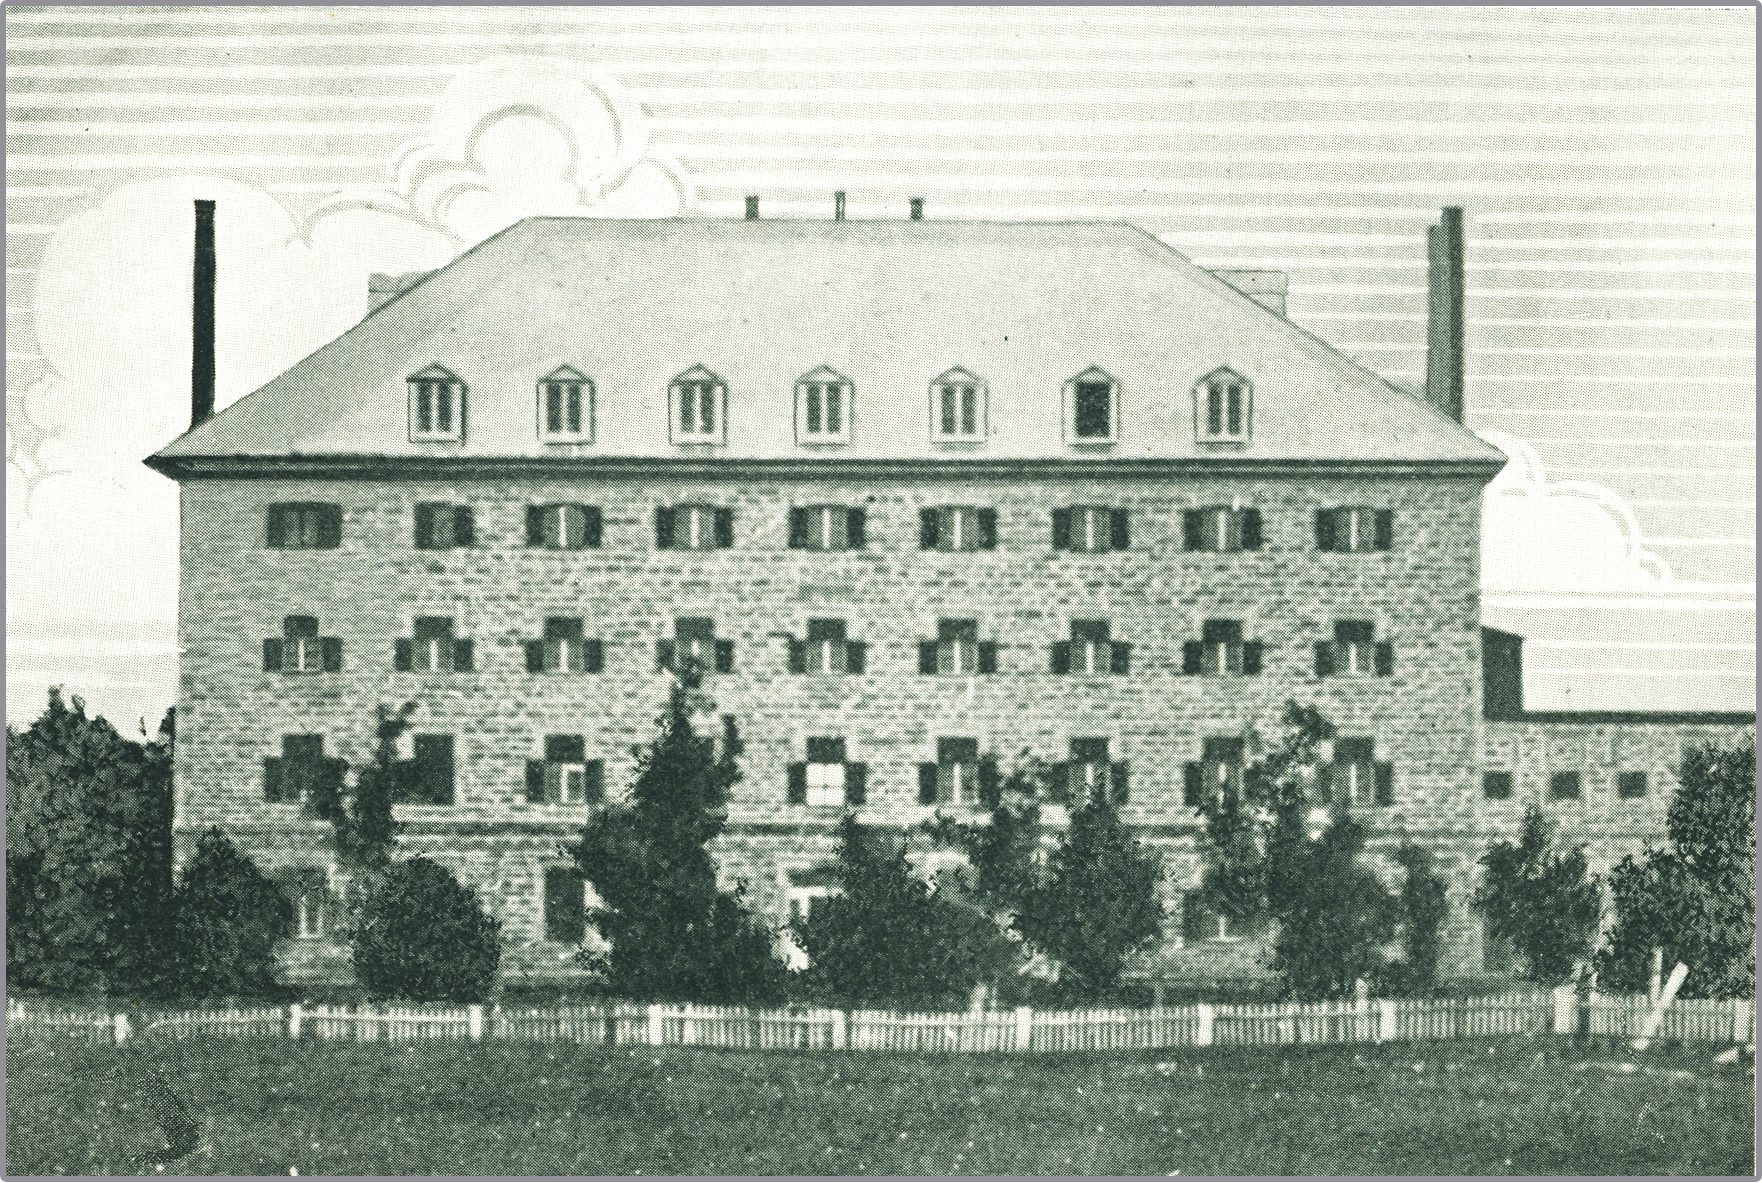 Drawing of a four-storey stone building with a hipped roof. Nine latticed windows are visible per floor, while the roof features seven dormers. Chimneys adorn each end of the roof. To the rear, at right, is a two-storey stone building. The property is ringed by a wooden fence.